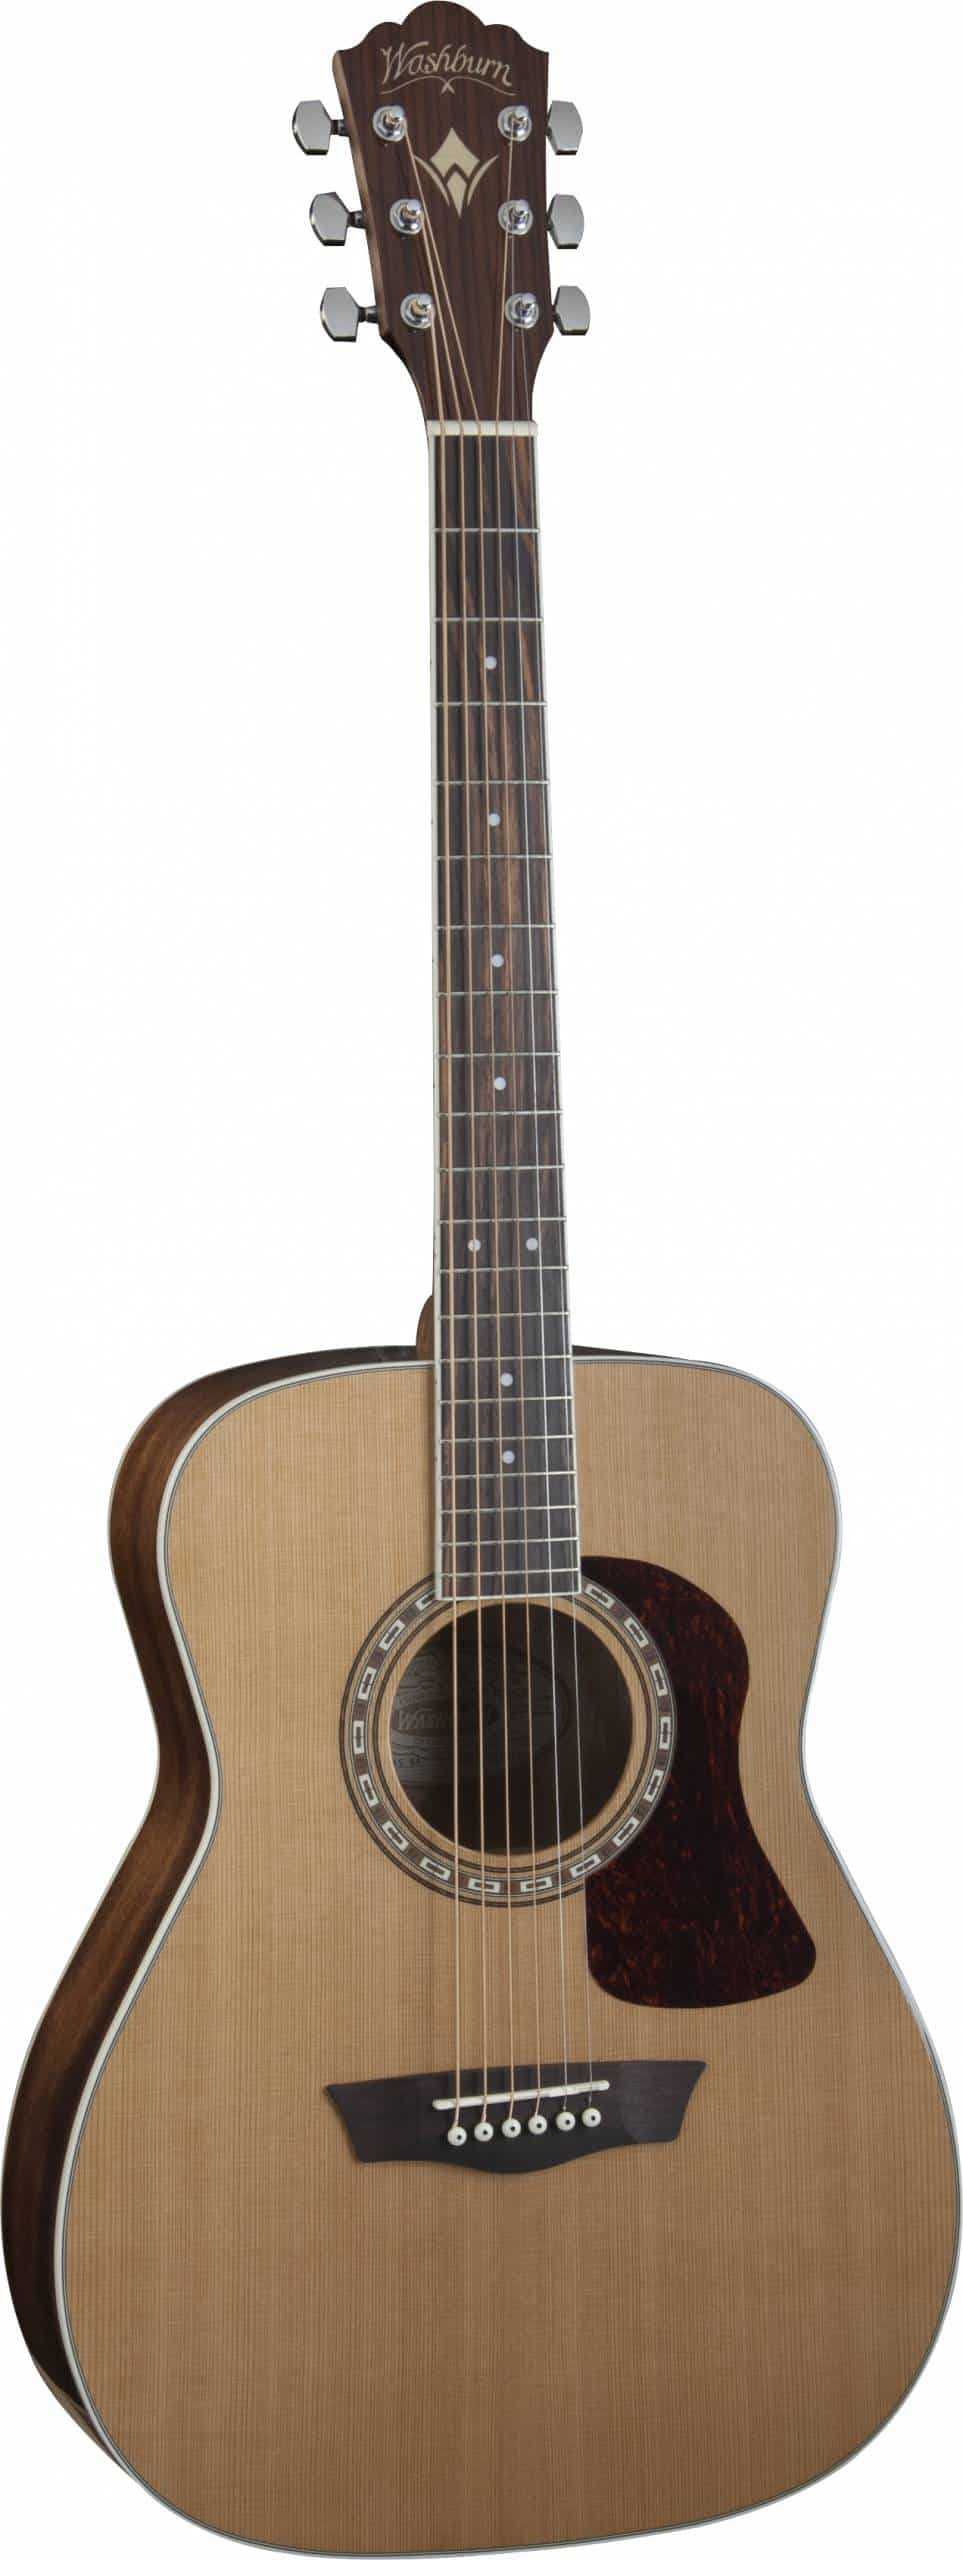 Washburn acoustic Guitar